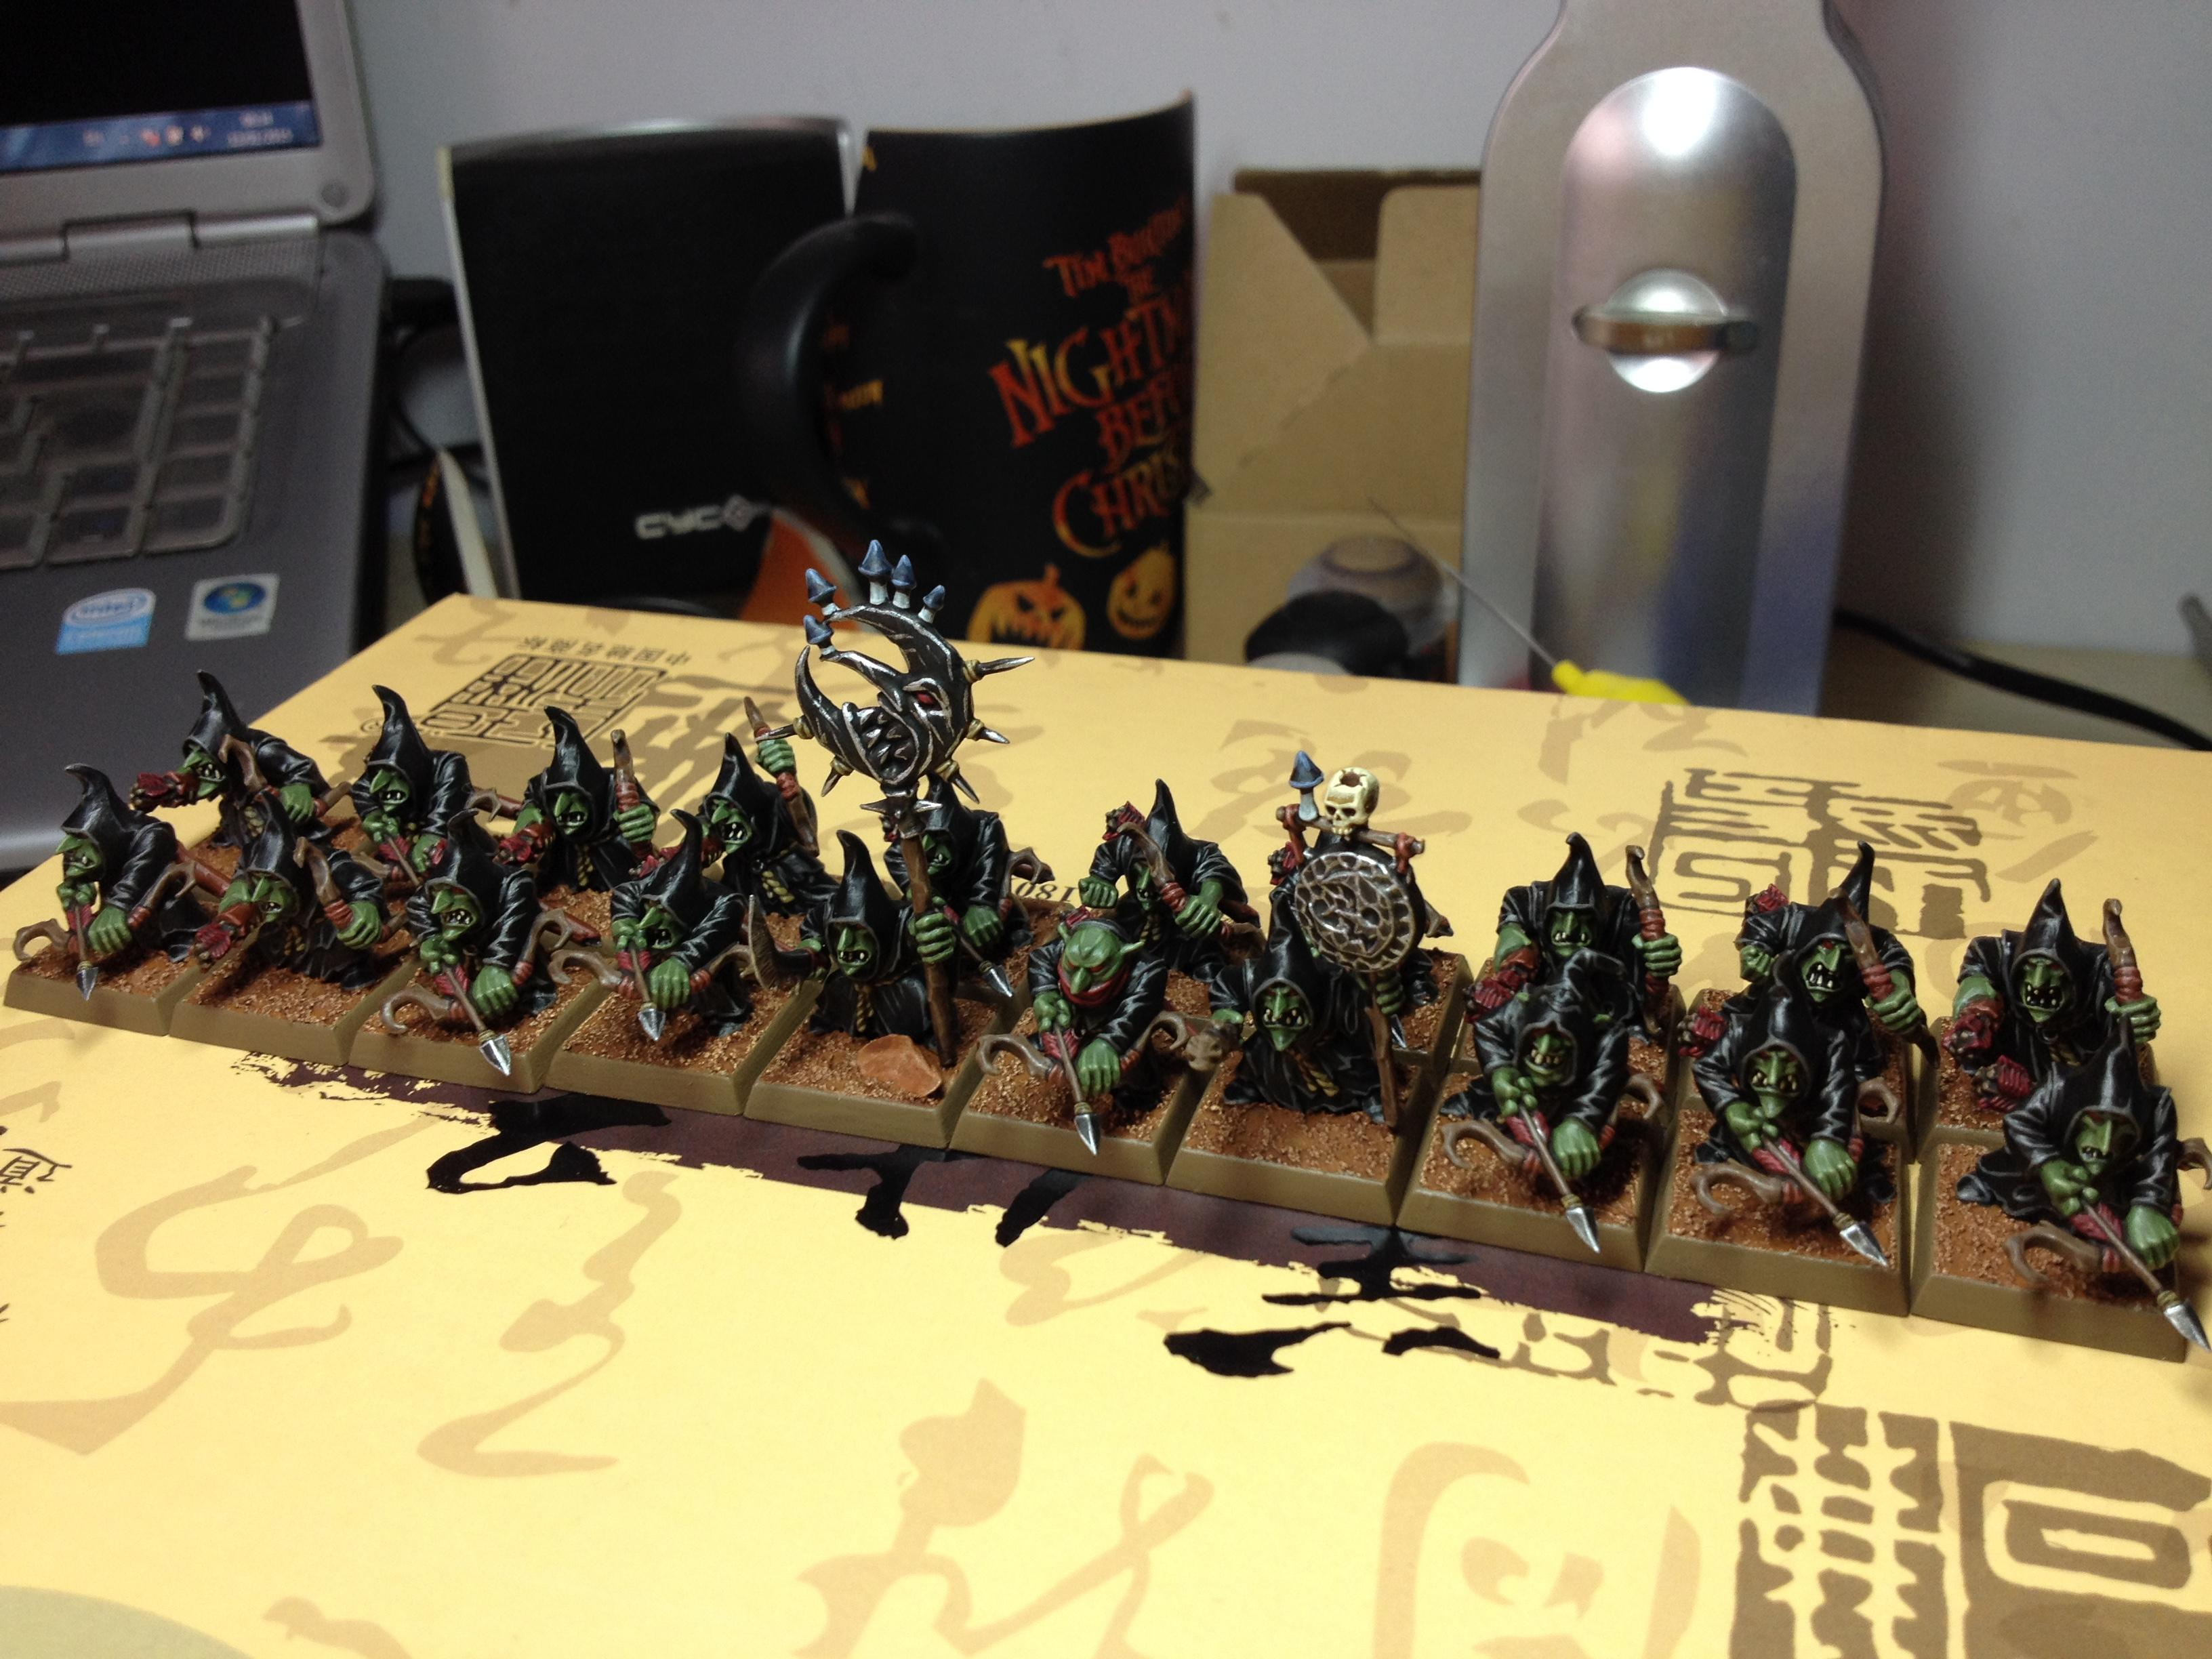 Bow, Bows, 20 Night Goblins w/bows